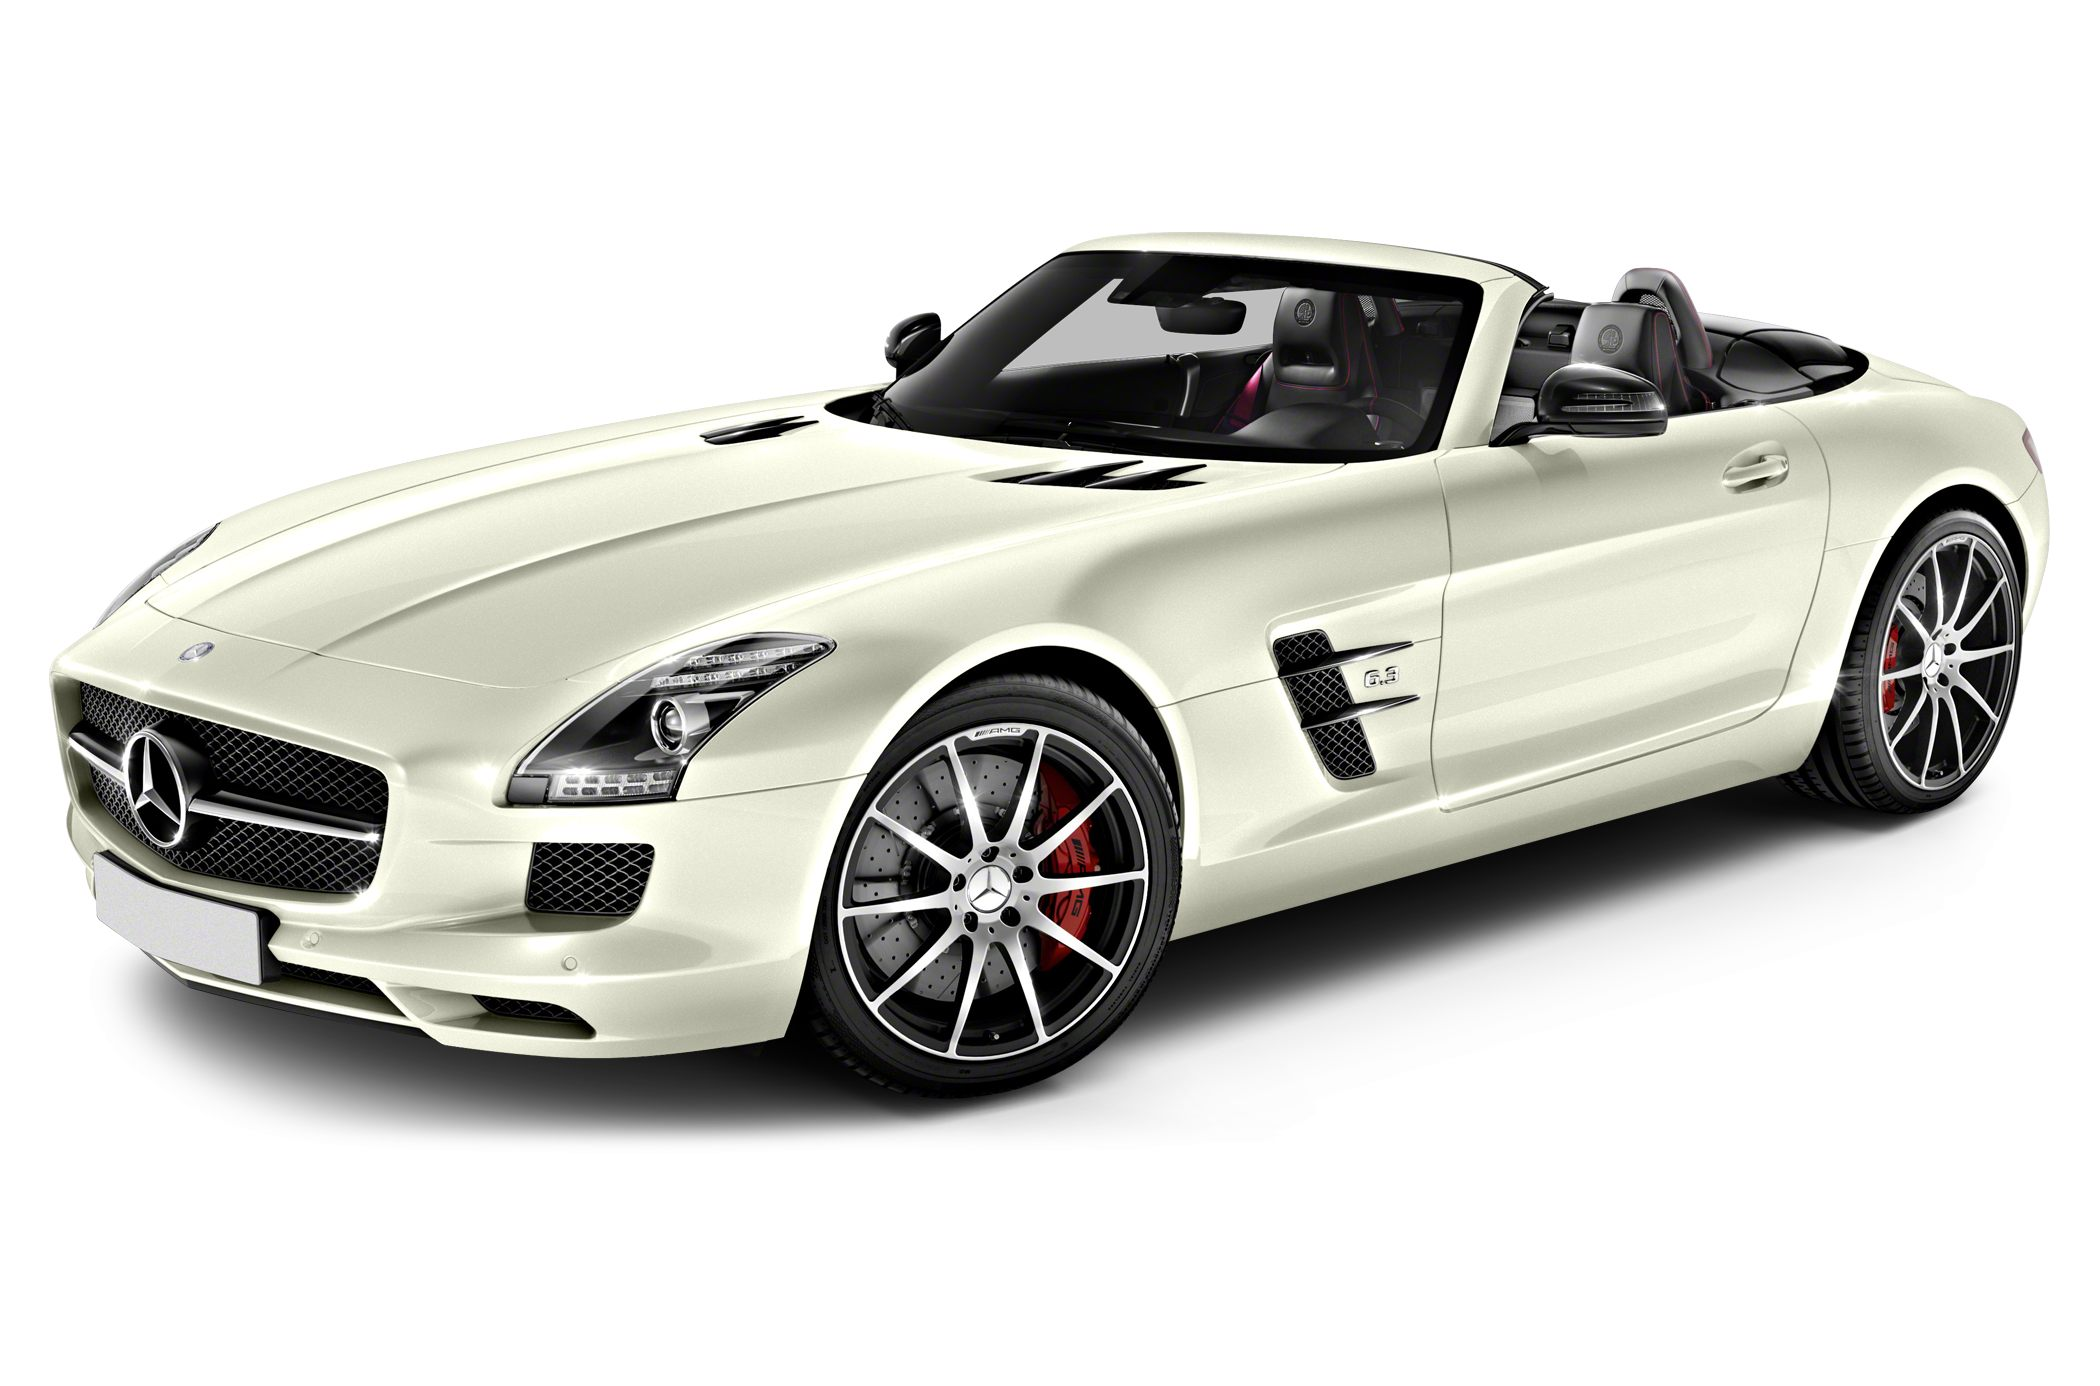 2014 Mercedes Benz SLS AMG GT SLS AMG 2dr Roadster Specs and Prices